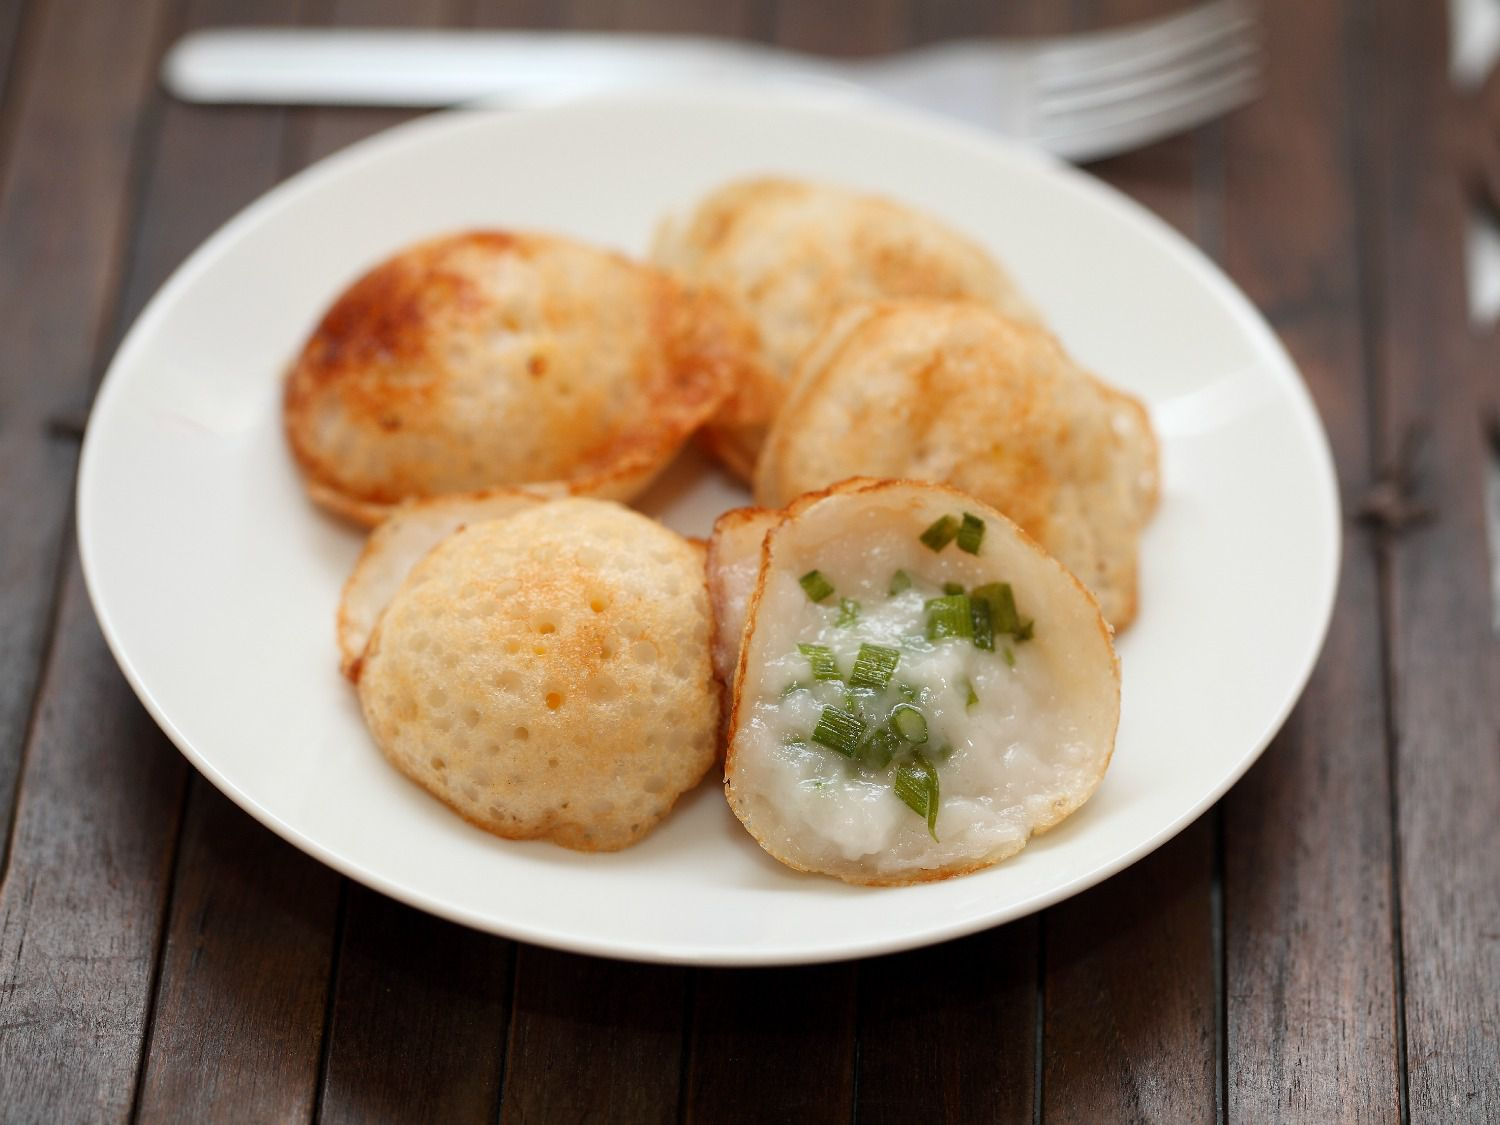 A white plate of serabi, small Indonesian pancakes made of rice flour and coconut.